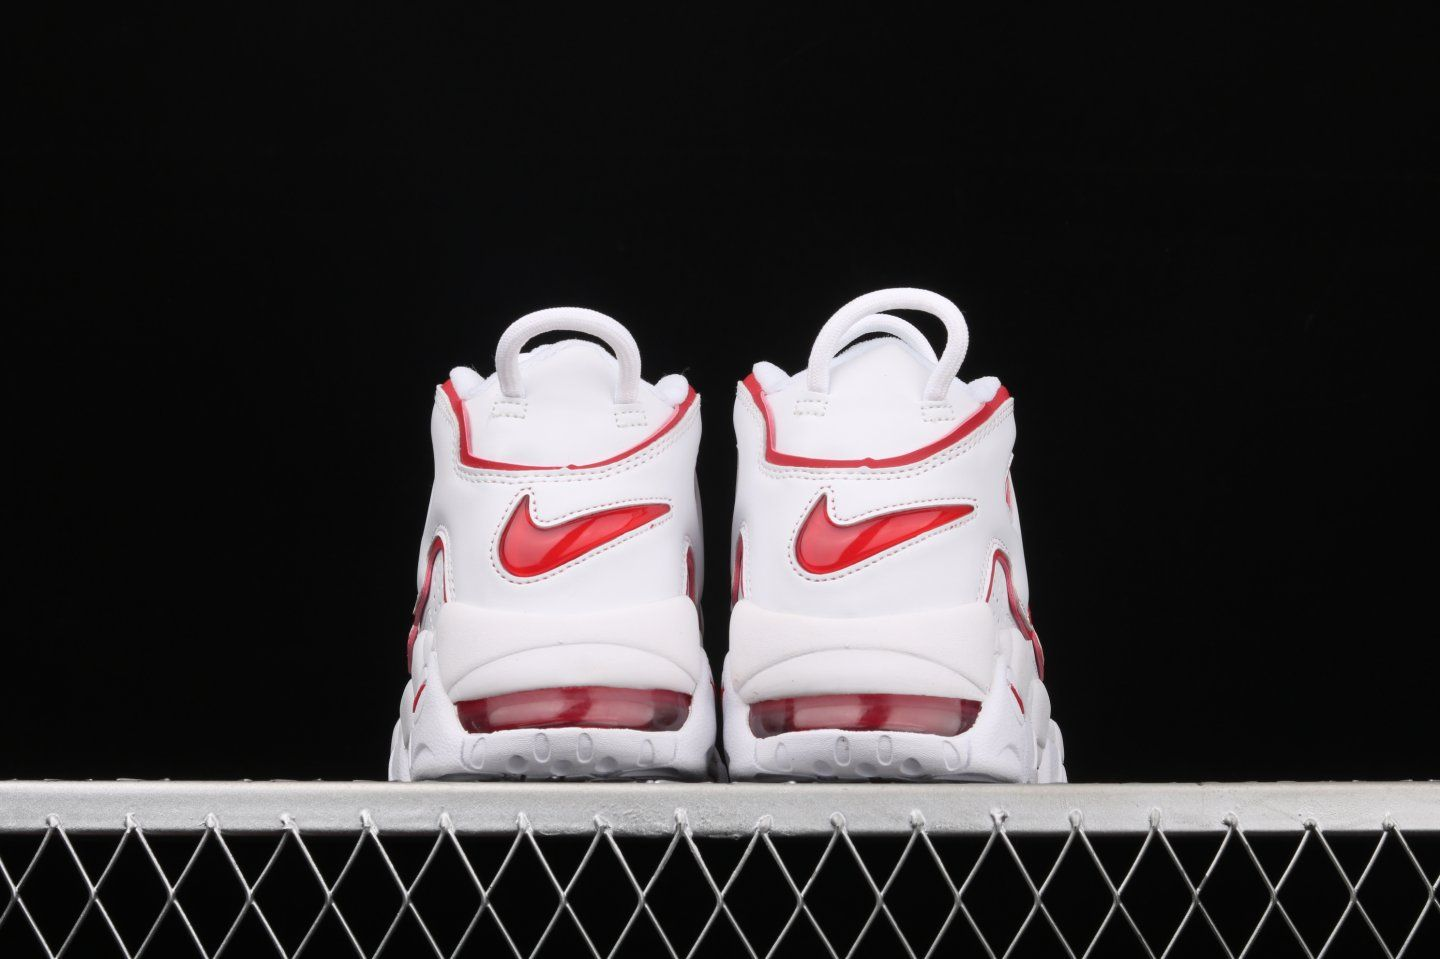 "Harga Sepatu Nike Air More Uptempo Nike Air More Uptempo ""White Varsity Red Outline"" 5 nike_air_more_uptempo_white_varsity_red_outline_5"